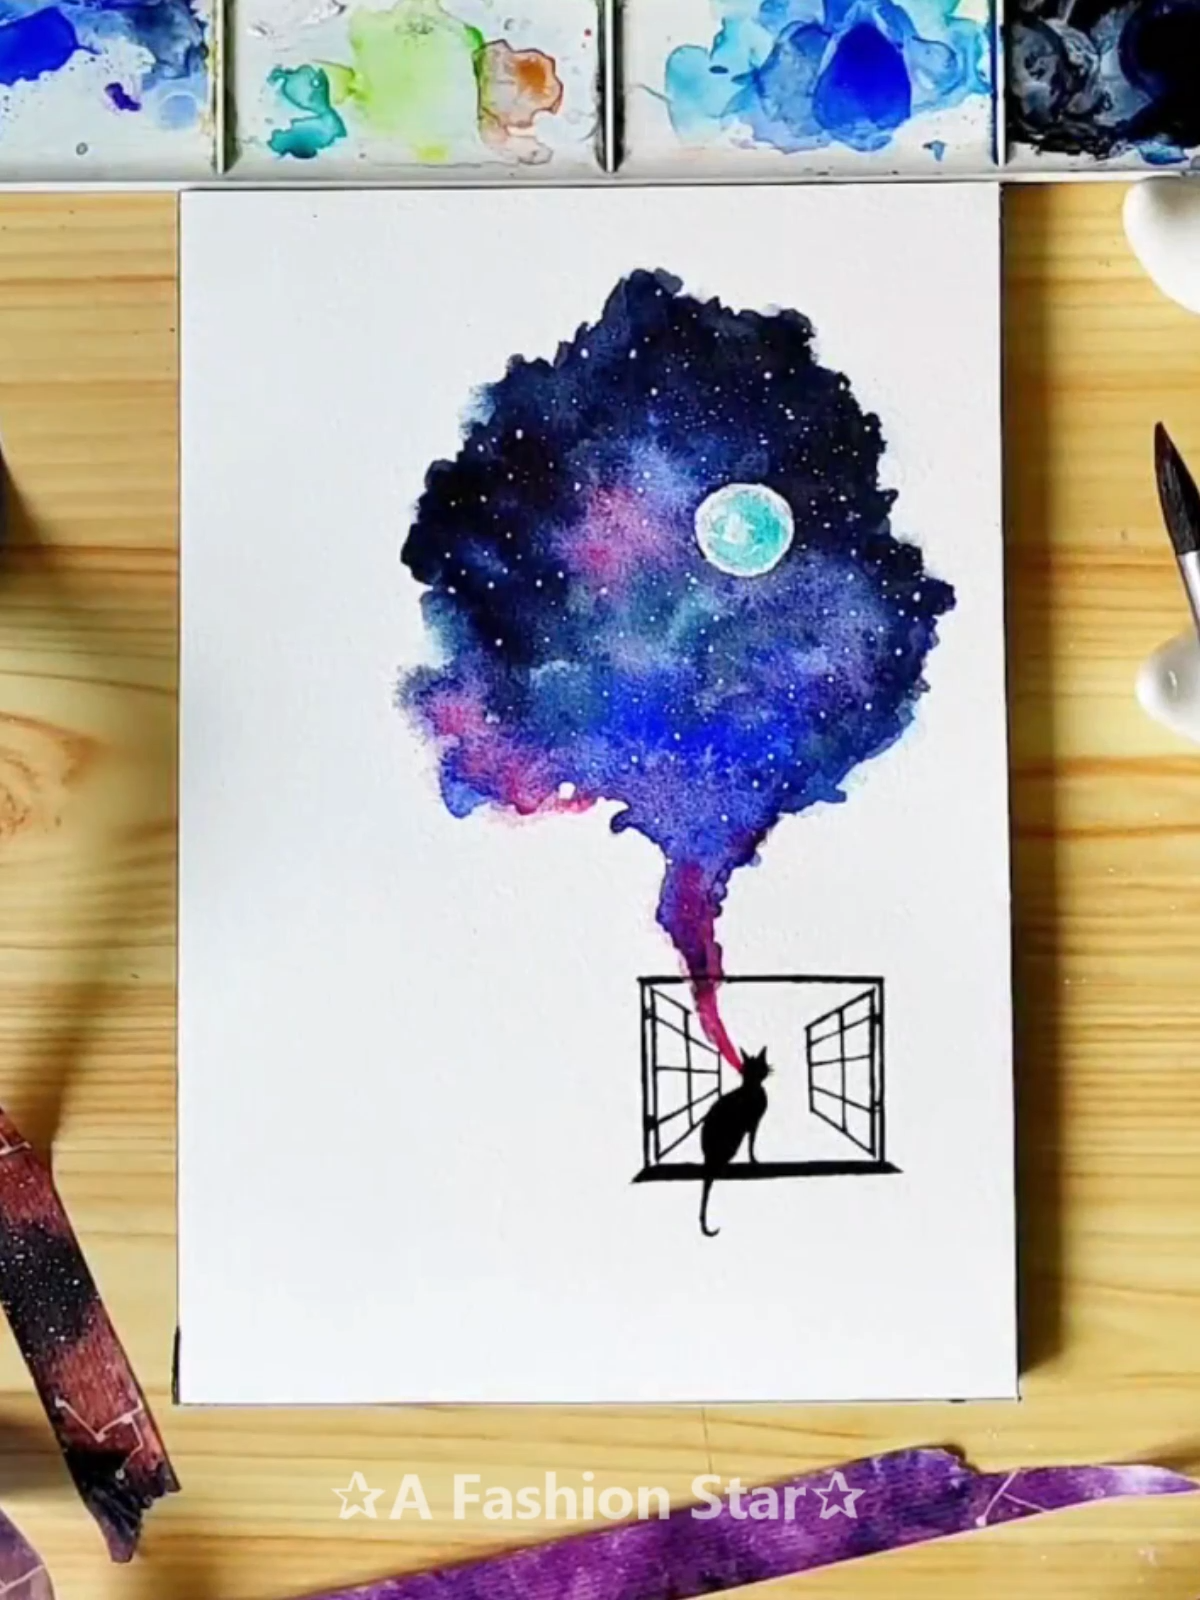 14 Easy And Beautiful Watercolor Painting - Watercolor Painting Ideas For Beginner